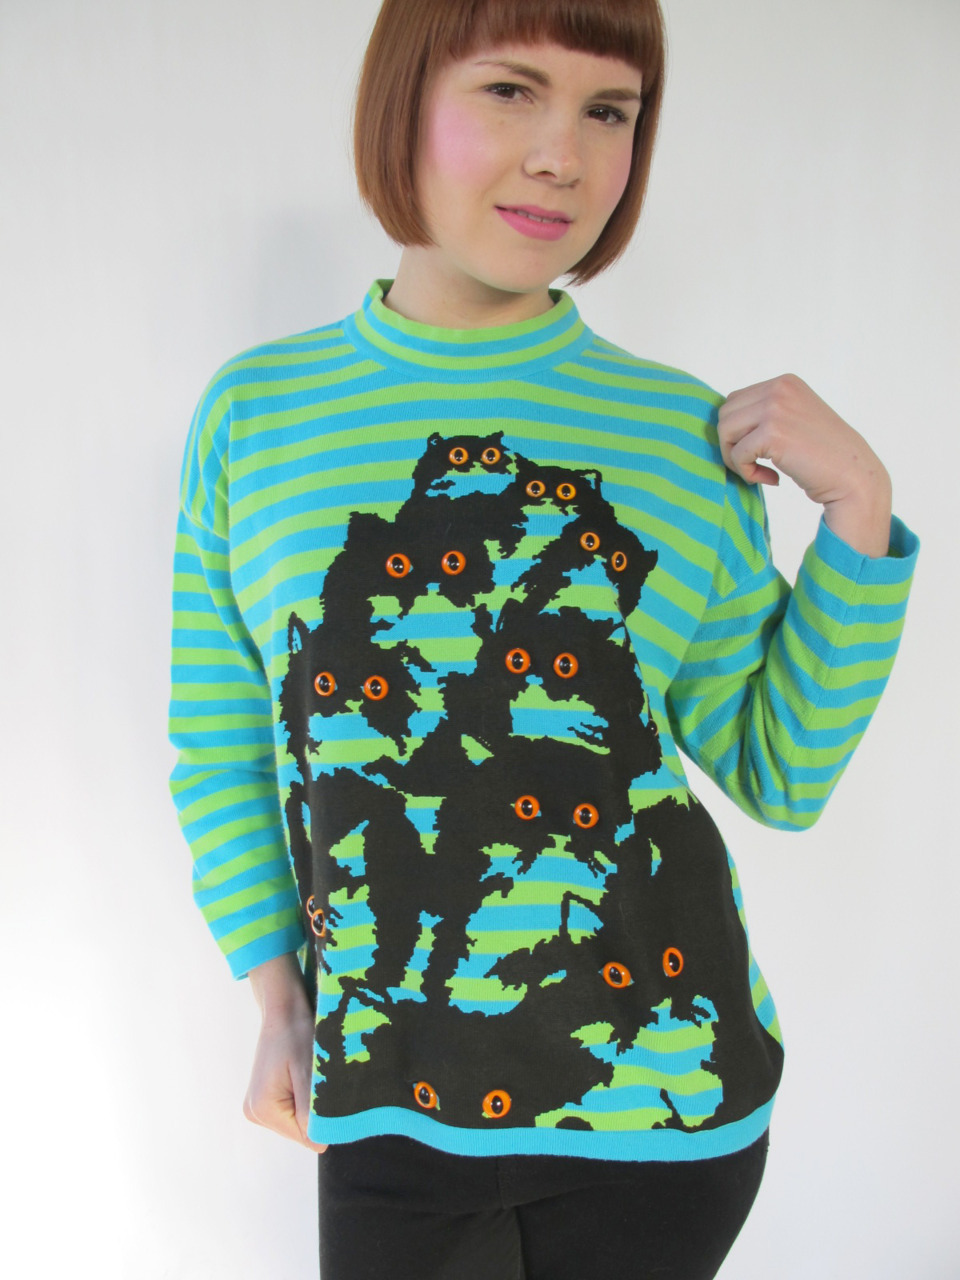 green and blue striped cat sweater by Pretty Snake http://www.etsy.com/shop/PrettySnake